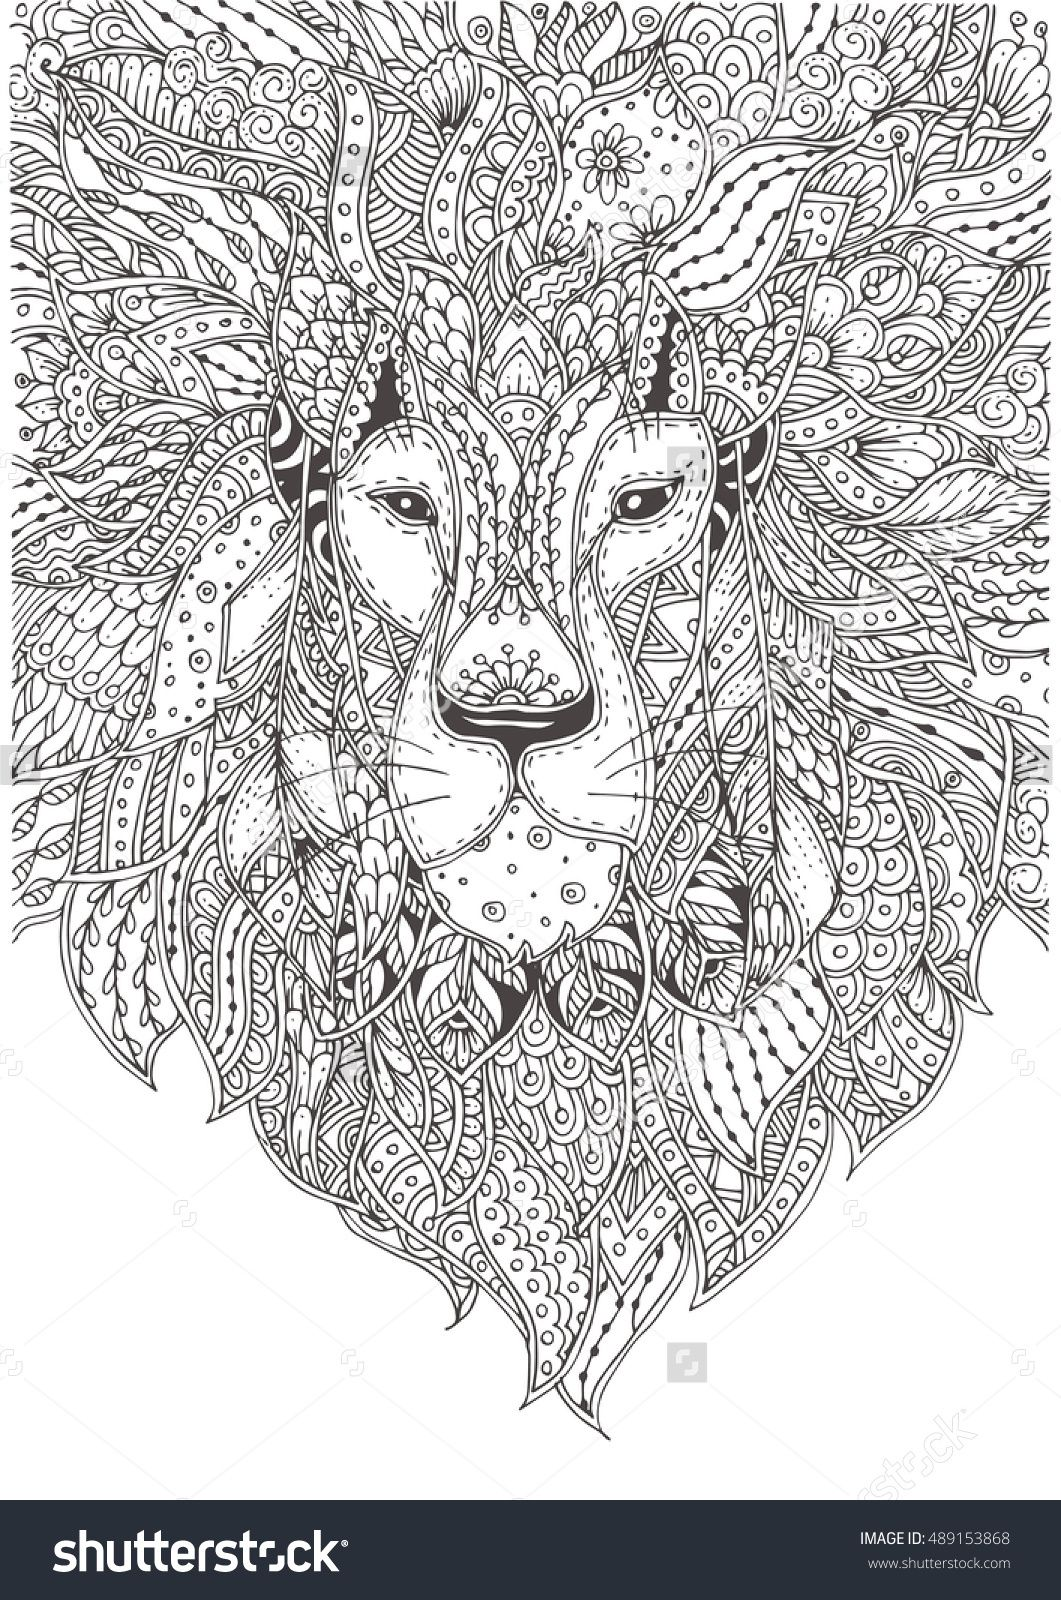 Hand Drawn Lion With Ethnic Floral Pattern Coloring Page